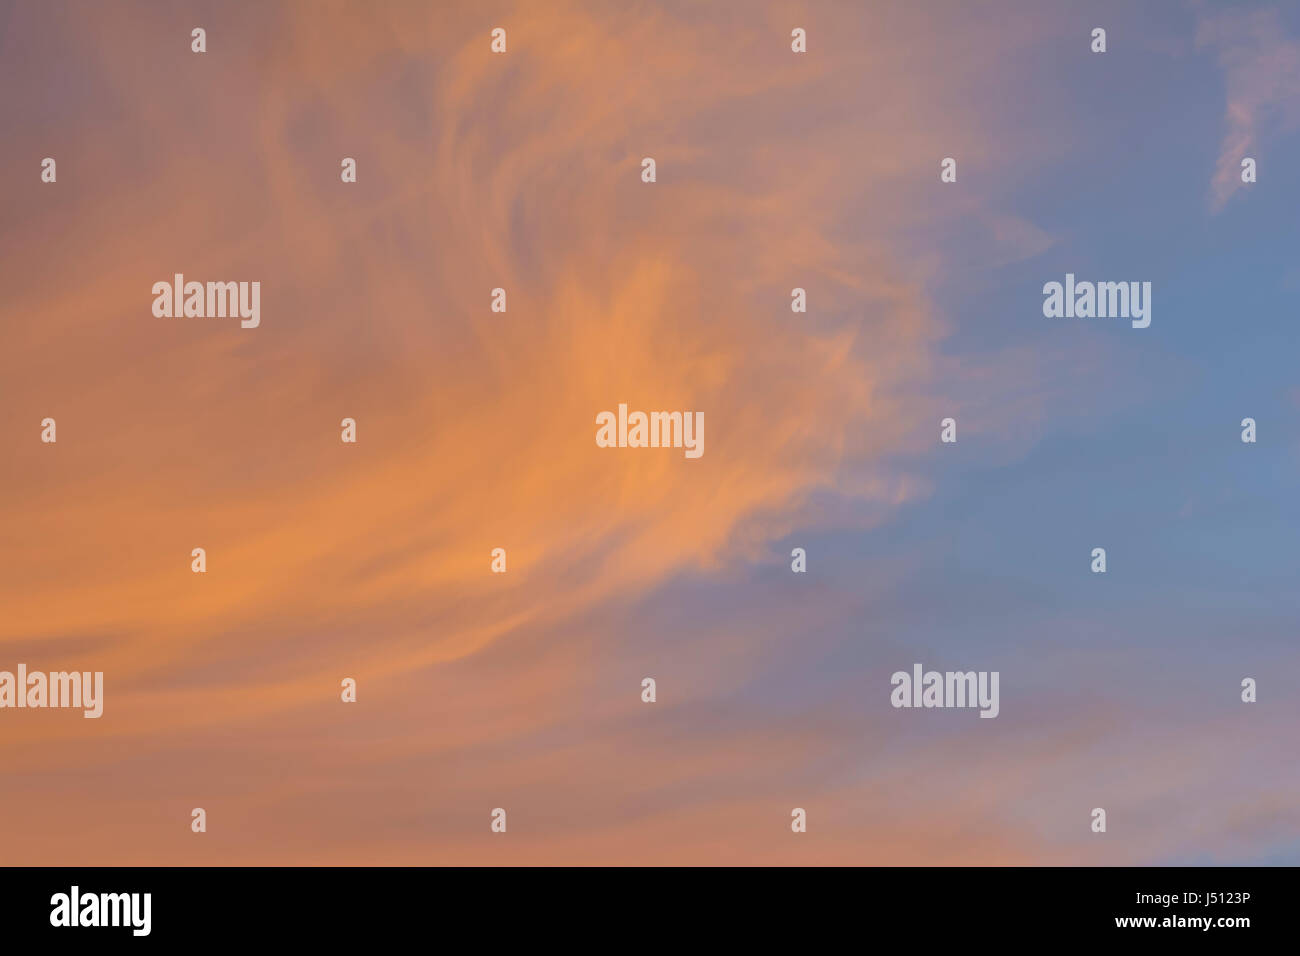 Whispy cloud formations in the sky tinted with the pastel colours of sunset. Suitable as a background. - Stock Image